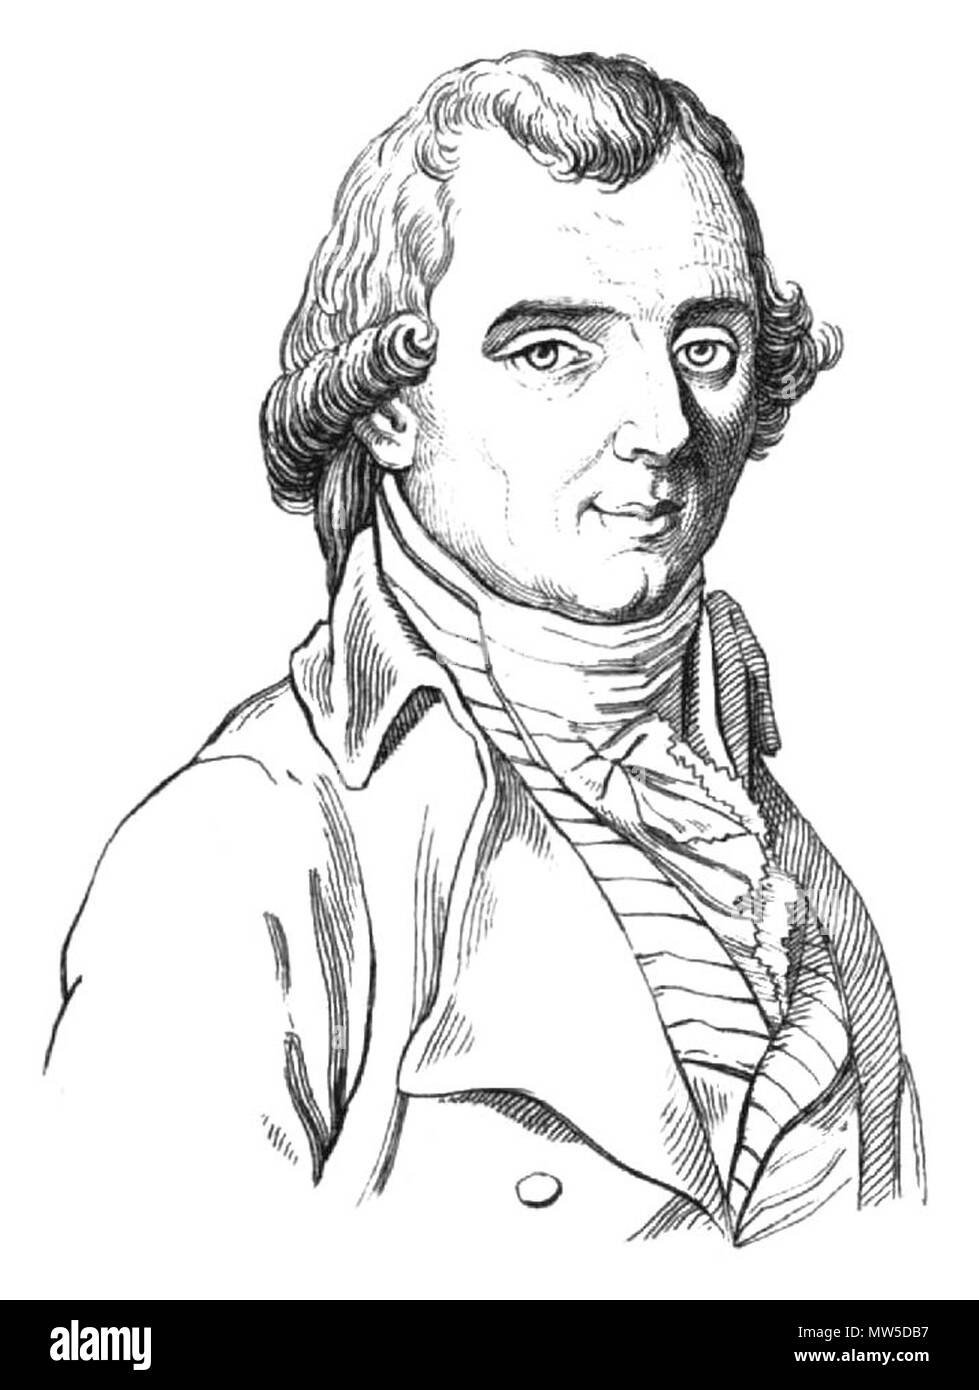 . Heinrich Wilhelm Matthäus Olbers (October 11, 1758 – March 2, 1840) was a German astronomer, physician and physicist. . This file is lacking author information. 270 Heinrich Wilhelm Olbers Stock Photo